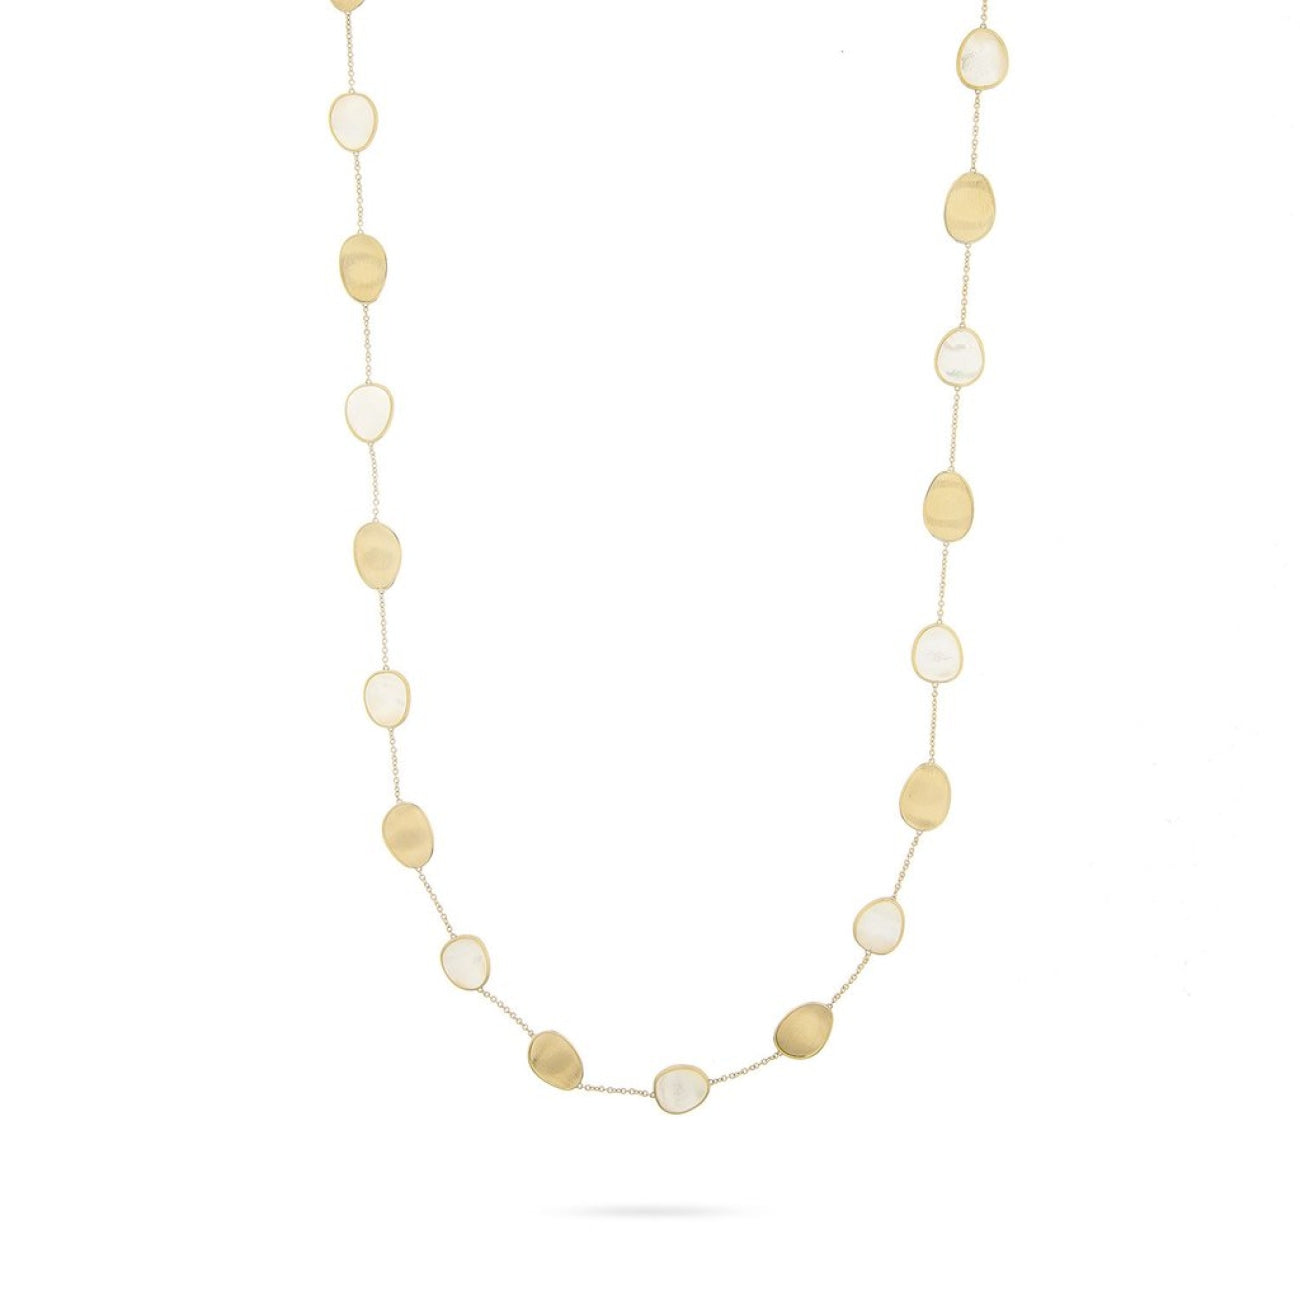 Marco Bicego Jewelry - 18K Yellow Gold & White Mother of Long Necklace | Manfredi Jewels